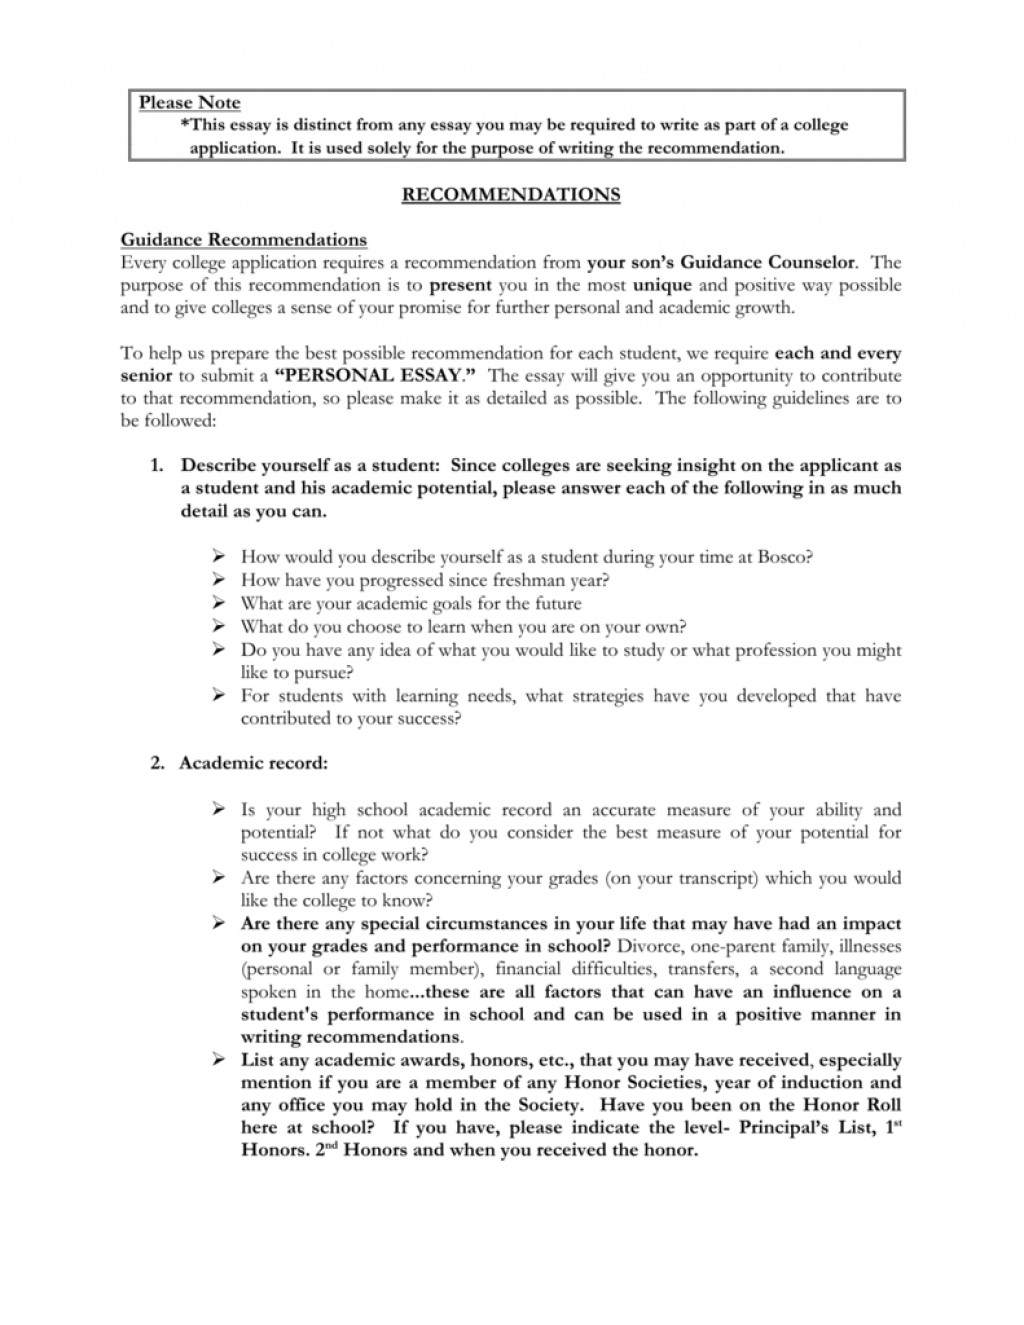 008 Essay Example 008051004 1 Where To Submit Personal Fearsome Essays Large